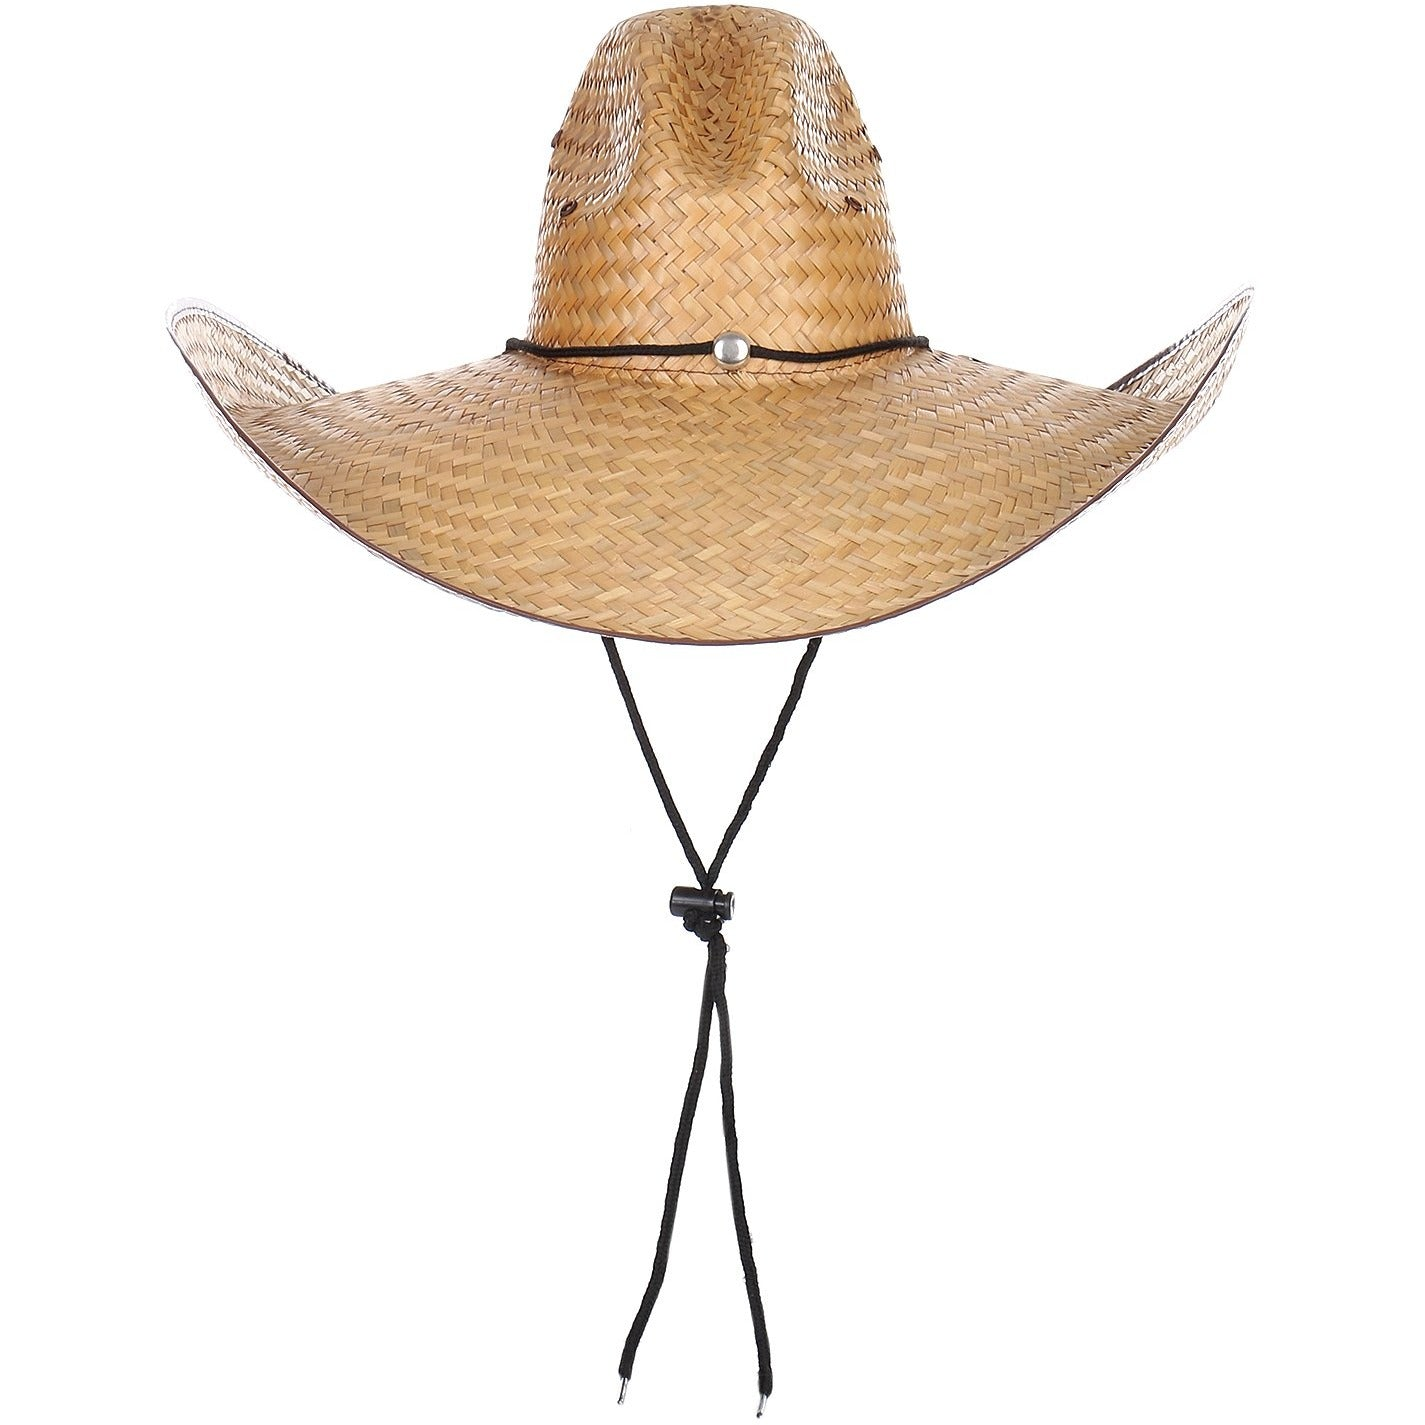 100% Straw Cowboy Oversize Hat with Drawstring